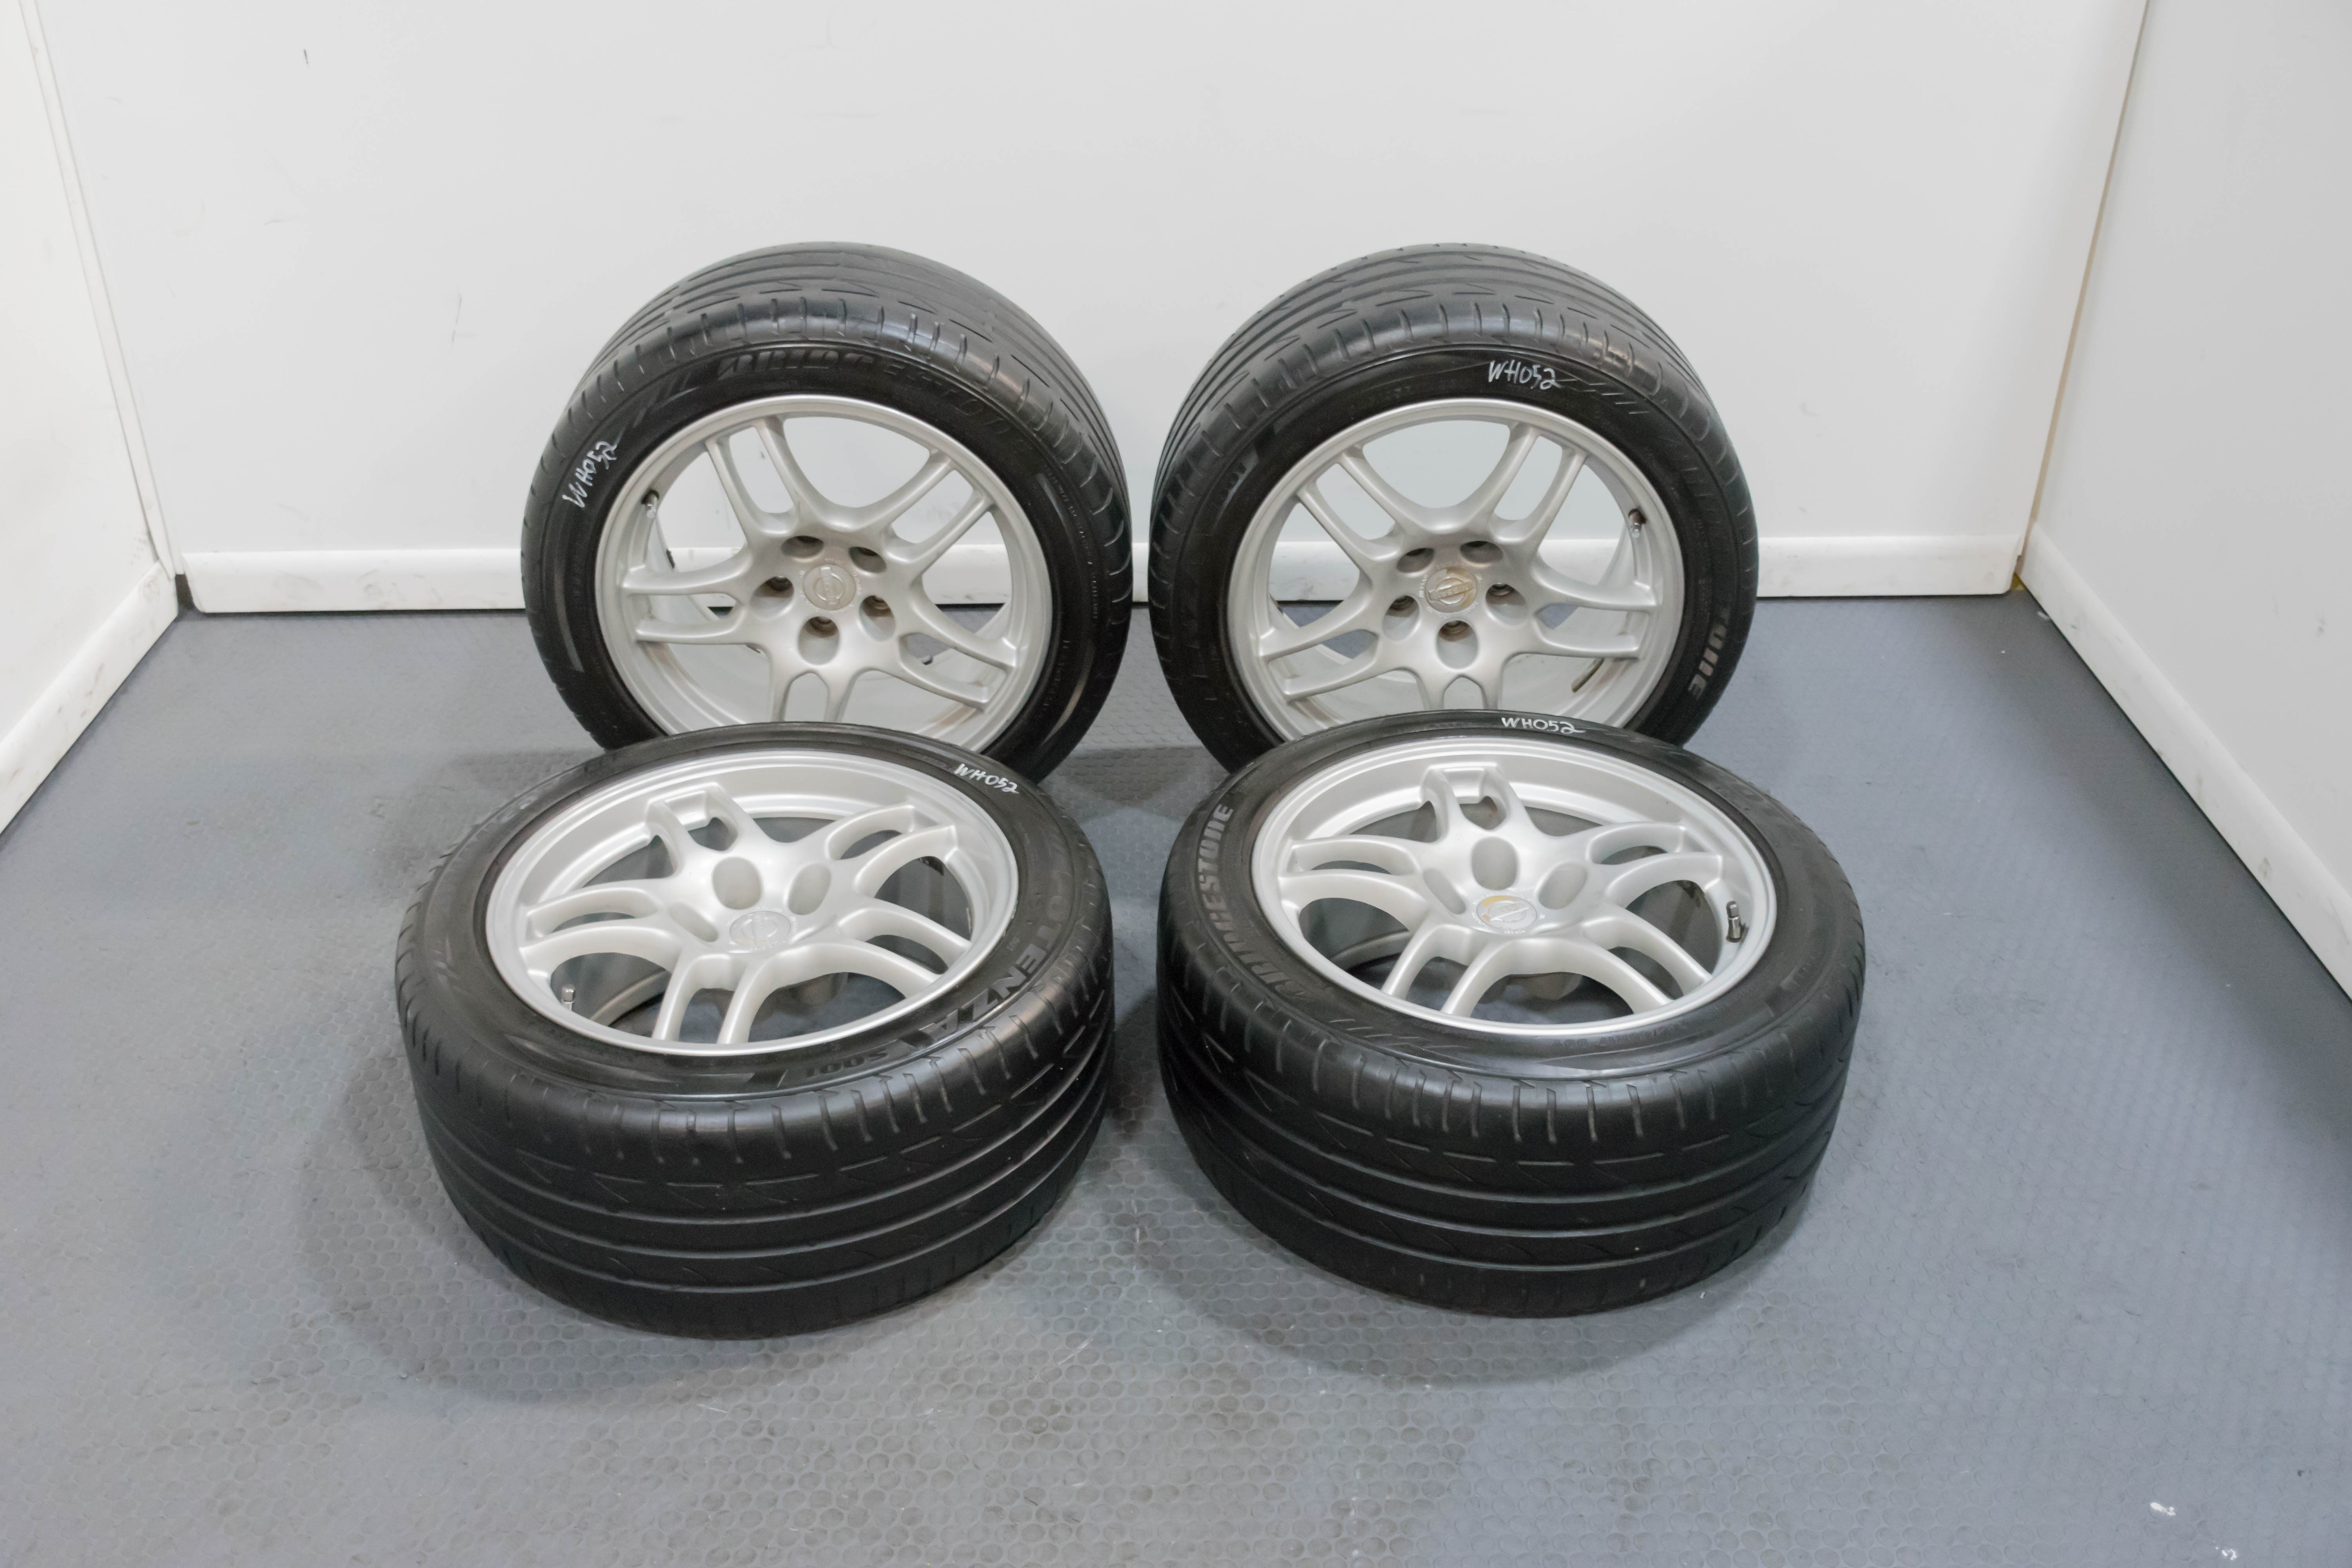 Used Wheels For Sale >> Used Nissan Skyline R33 Gtr 17x9 Forged Wheels For Sale